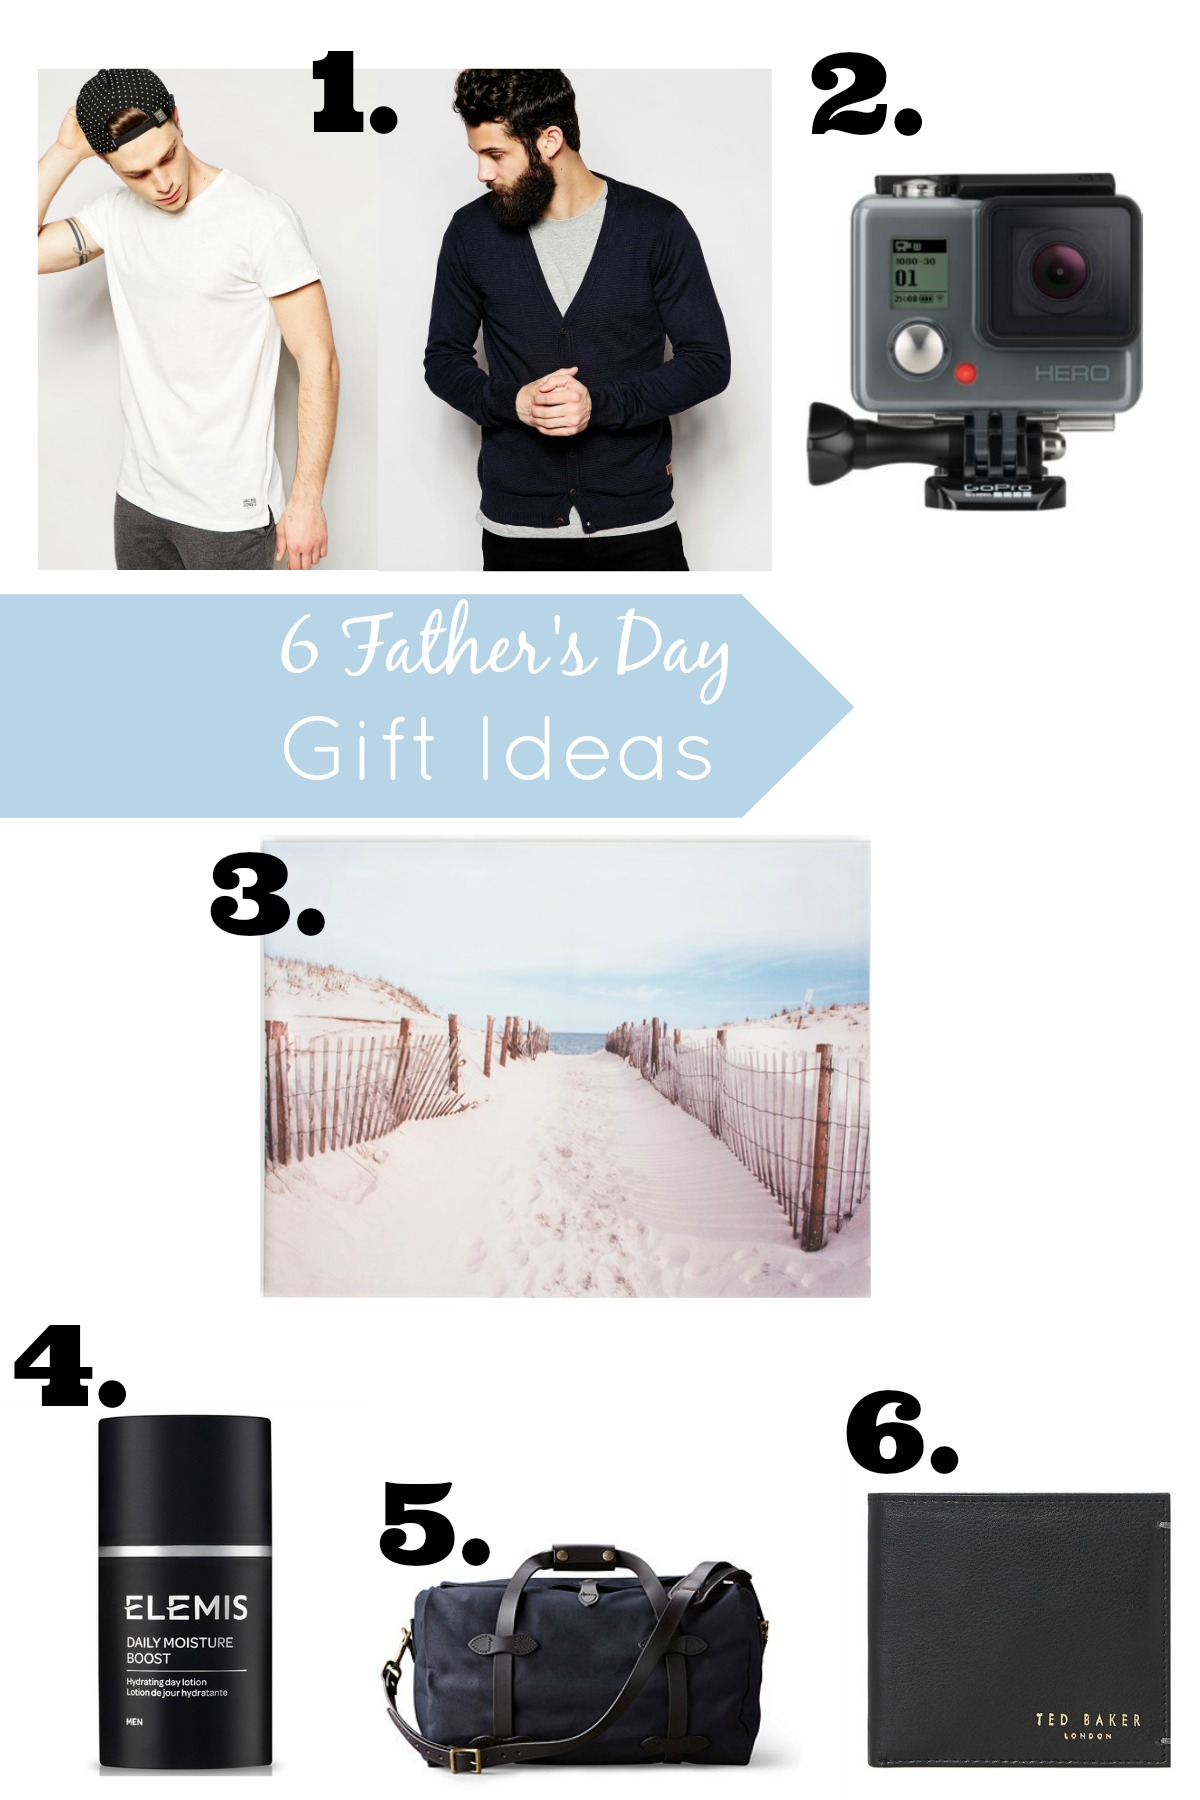 Father's Day 2015 Gift Ideas